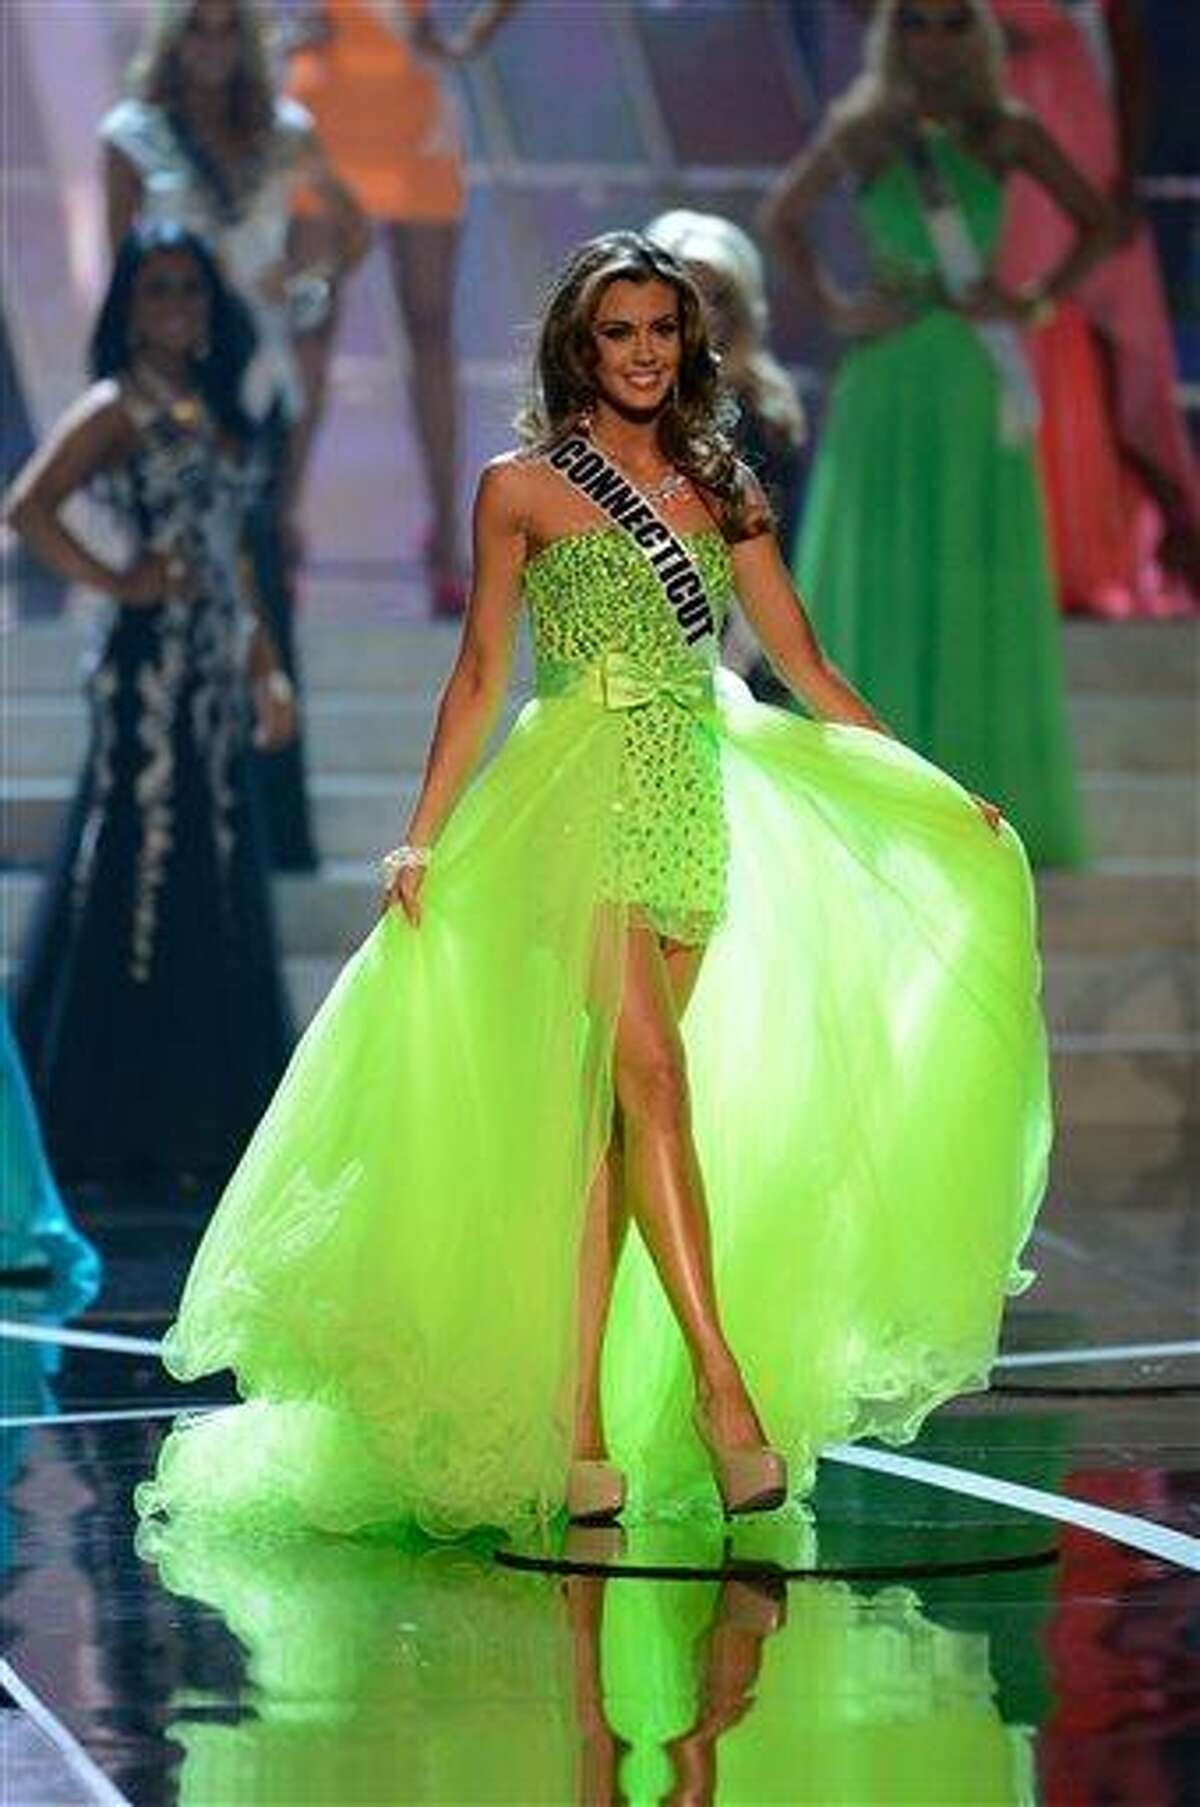 Miss Connecticut Erin Brady, from Glastonbury, Conn., walks the runway during the introductions of the Miss USA 2013 pageant, Sunday, June 16, 2013, in Las Vegas. (AP Photo/Jeff Bottari)